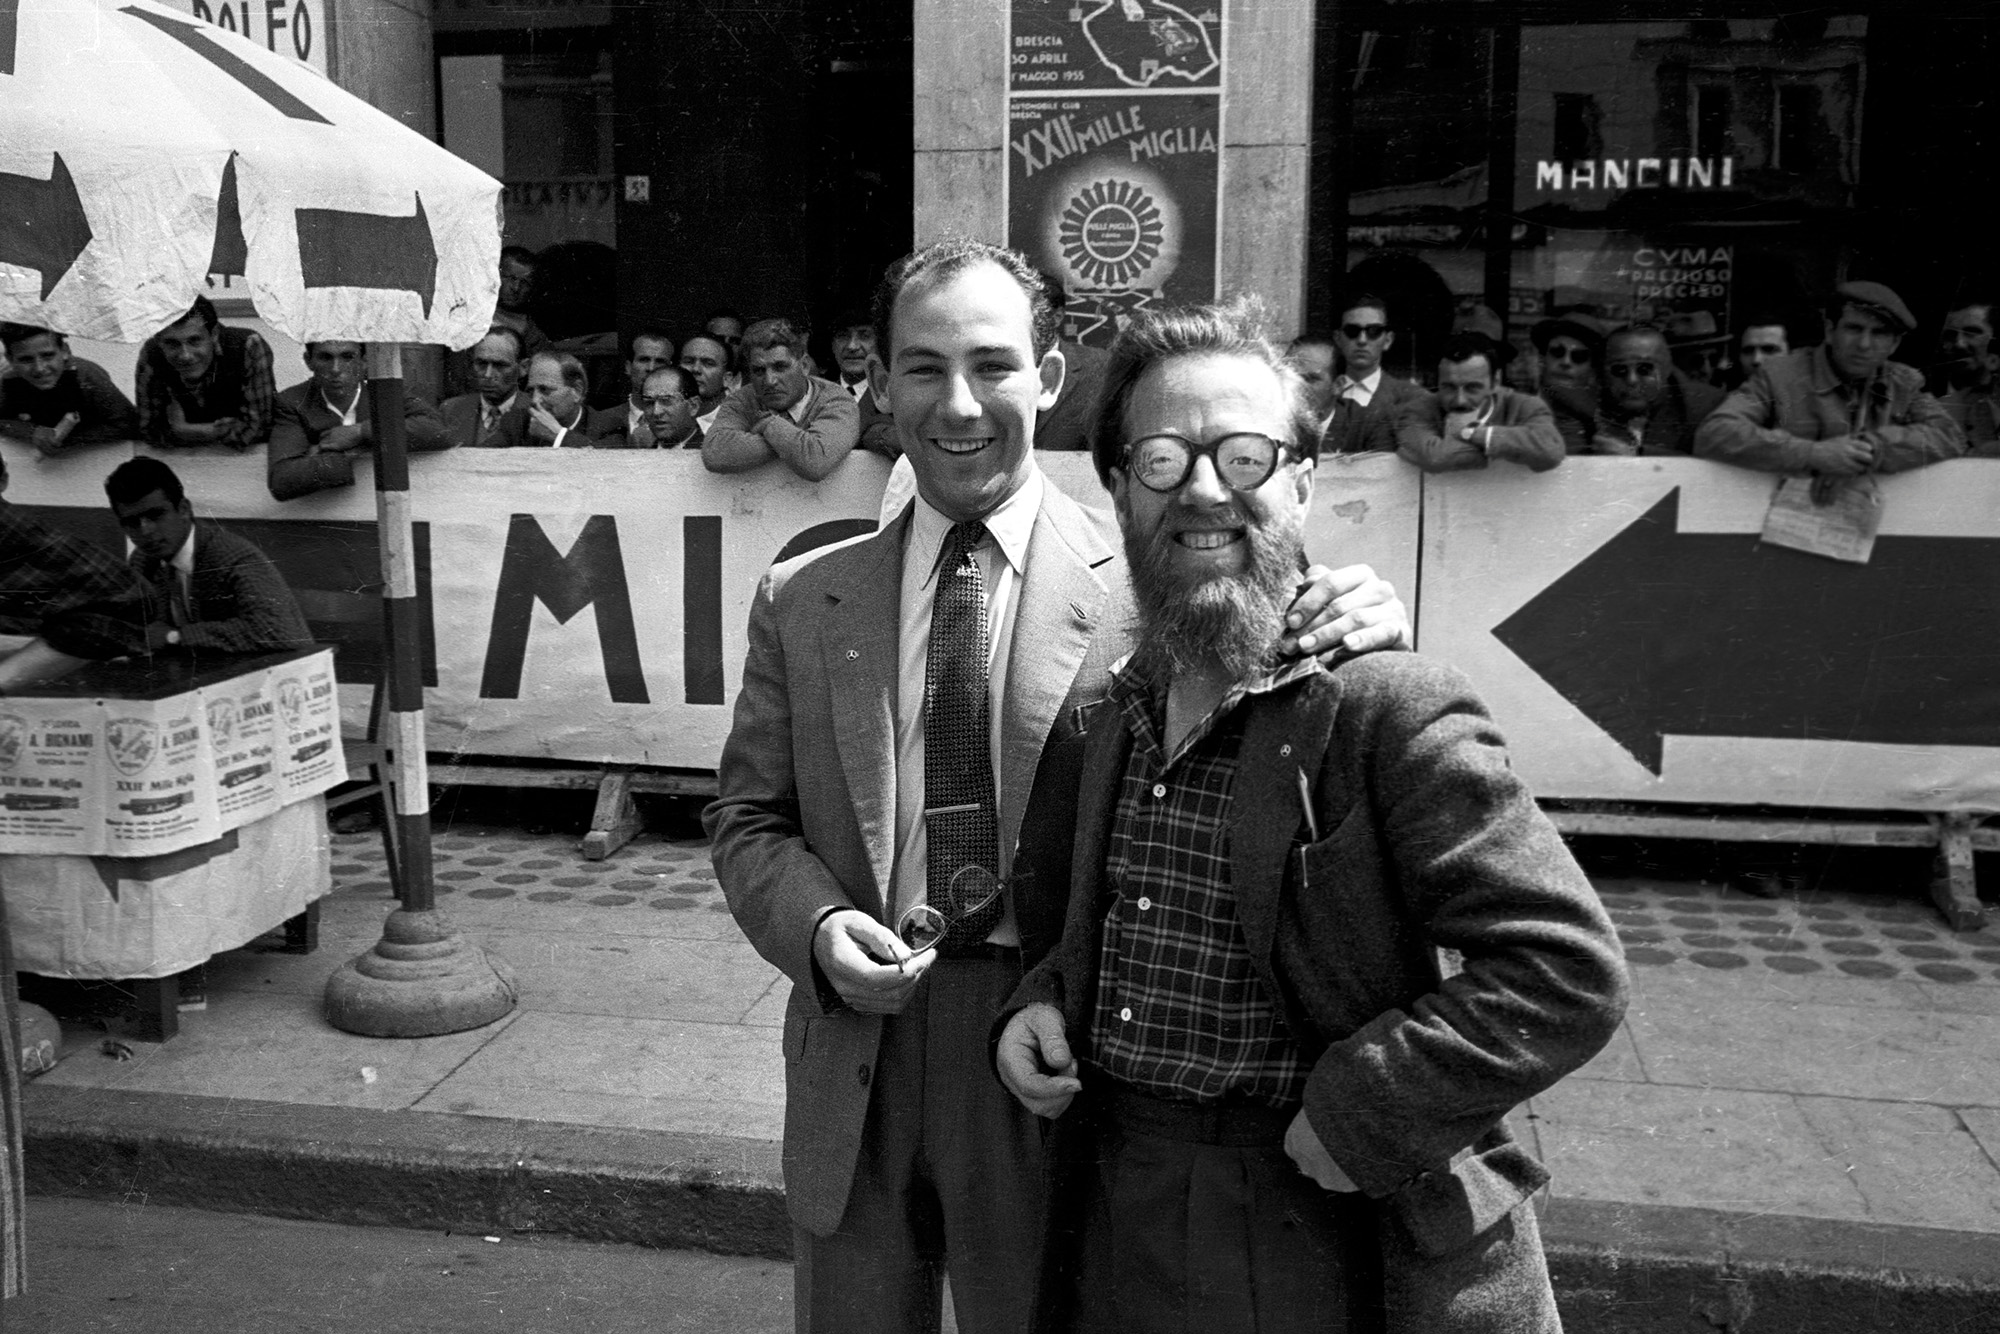 Stirling Moss with Denis Jenkinson at the 1955 Mille Miglia